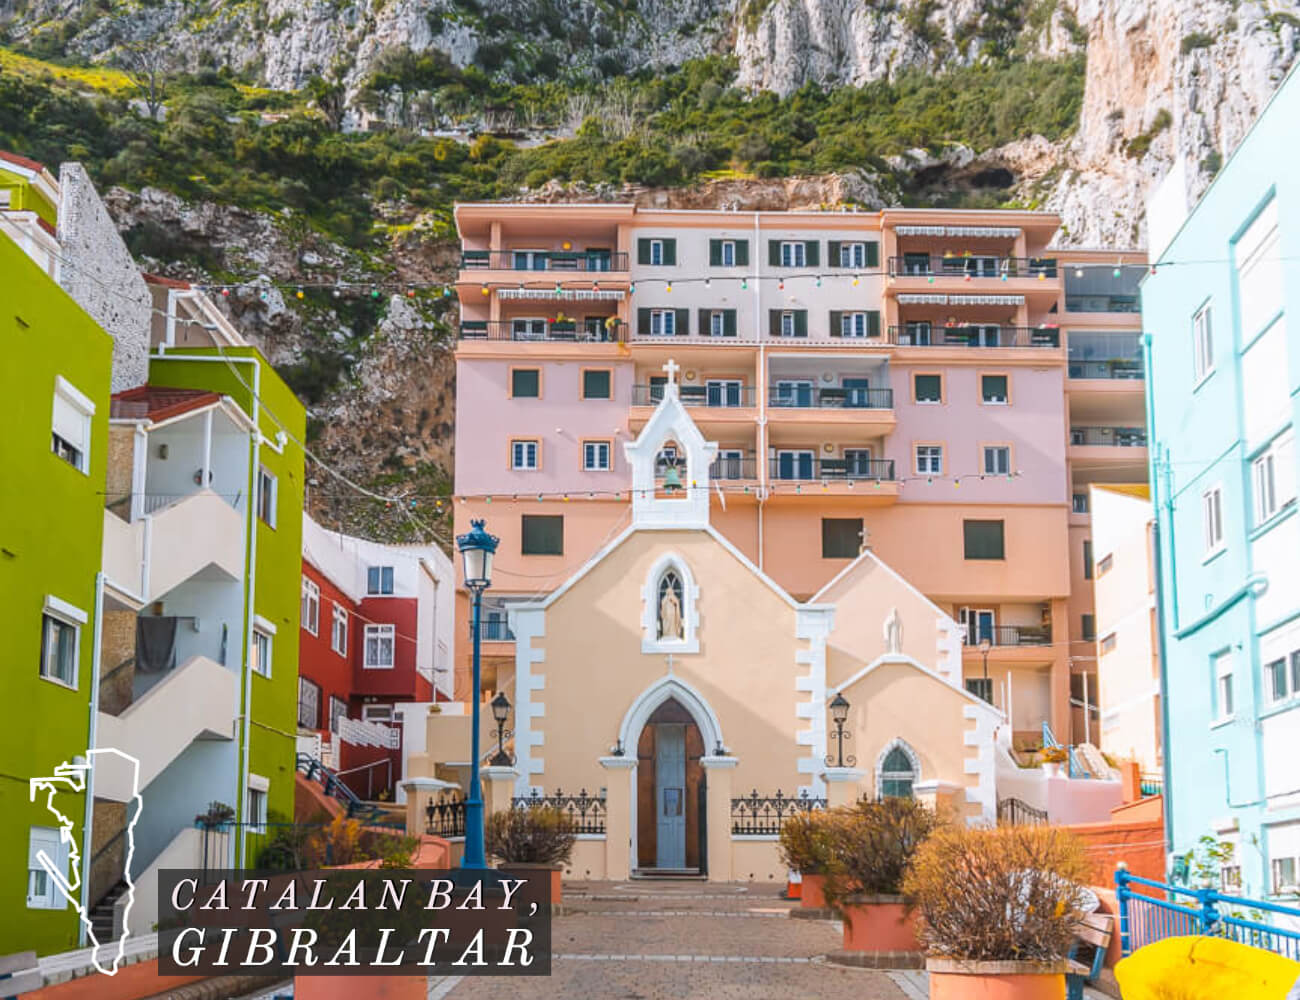 Catalan Bay is one example of the awesome things to do in Gibraltar. These colourful houses and the beautiful church that back up against the Rock of Gibraltar are a unique spot to visit.